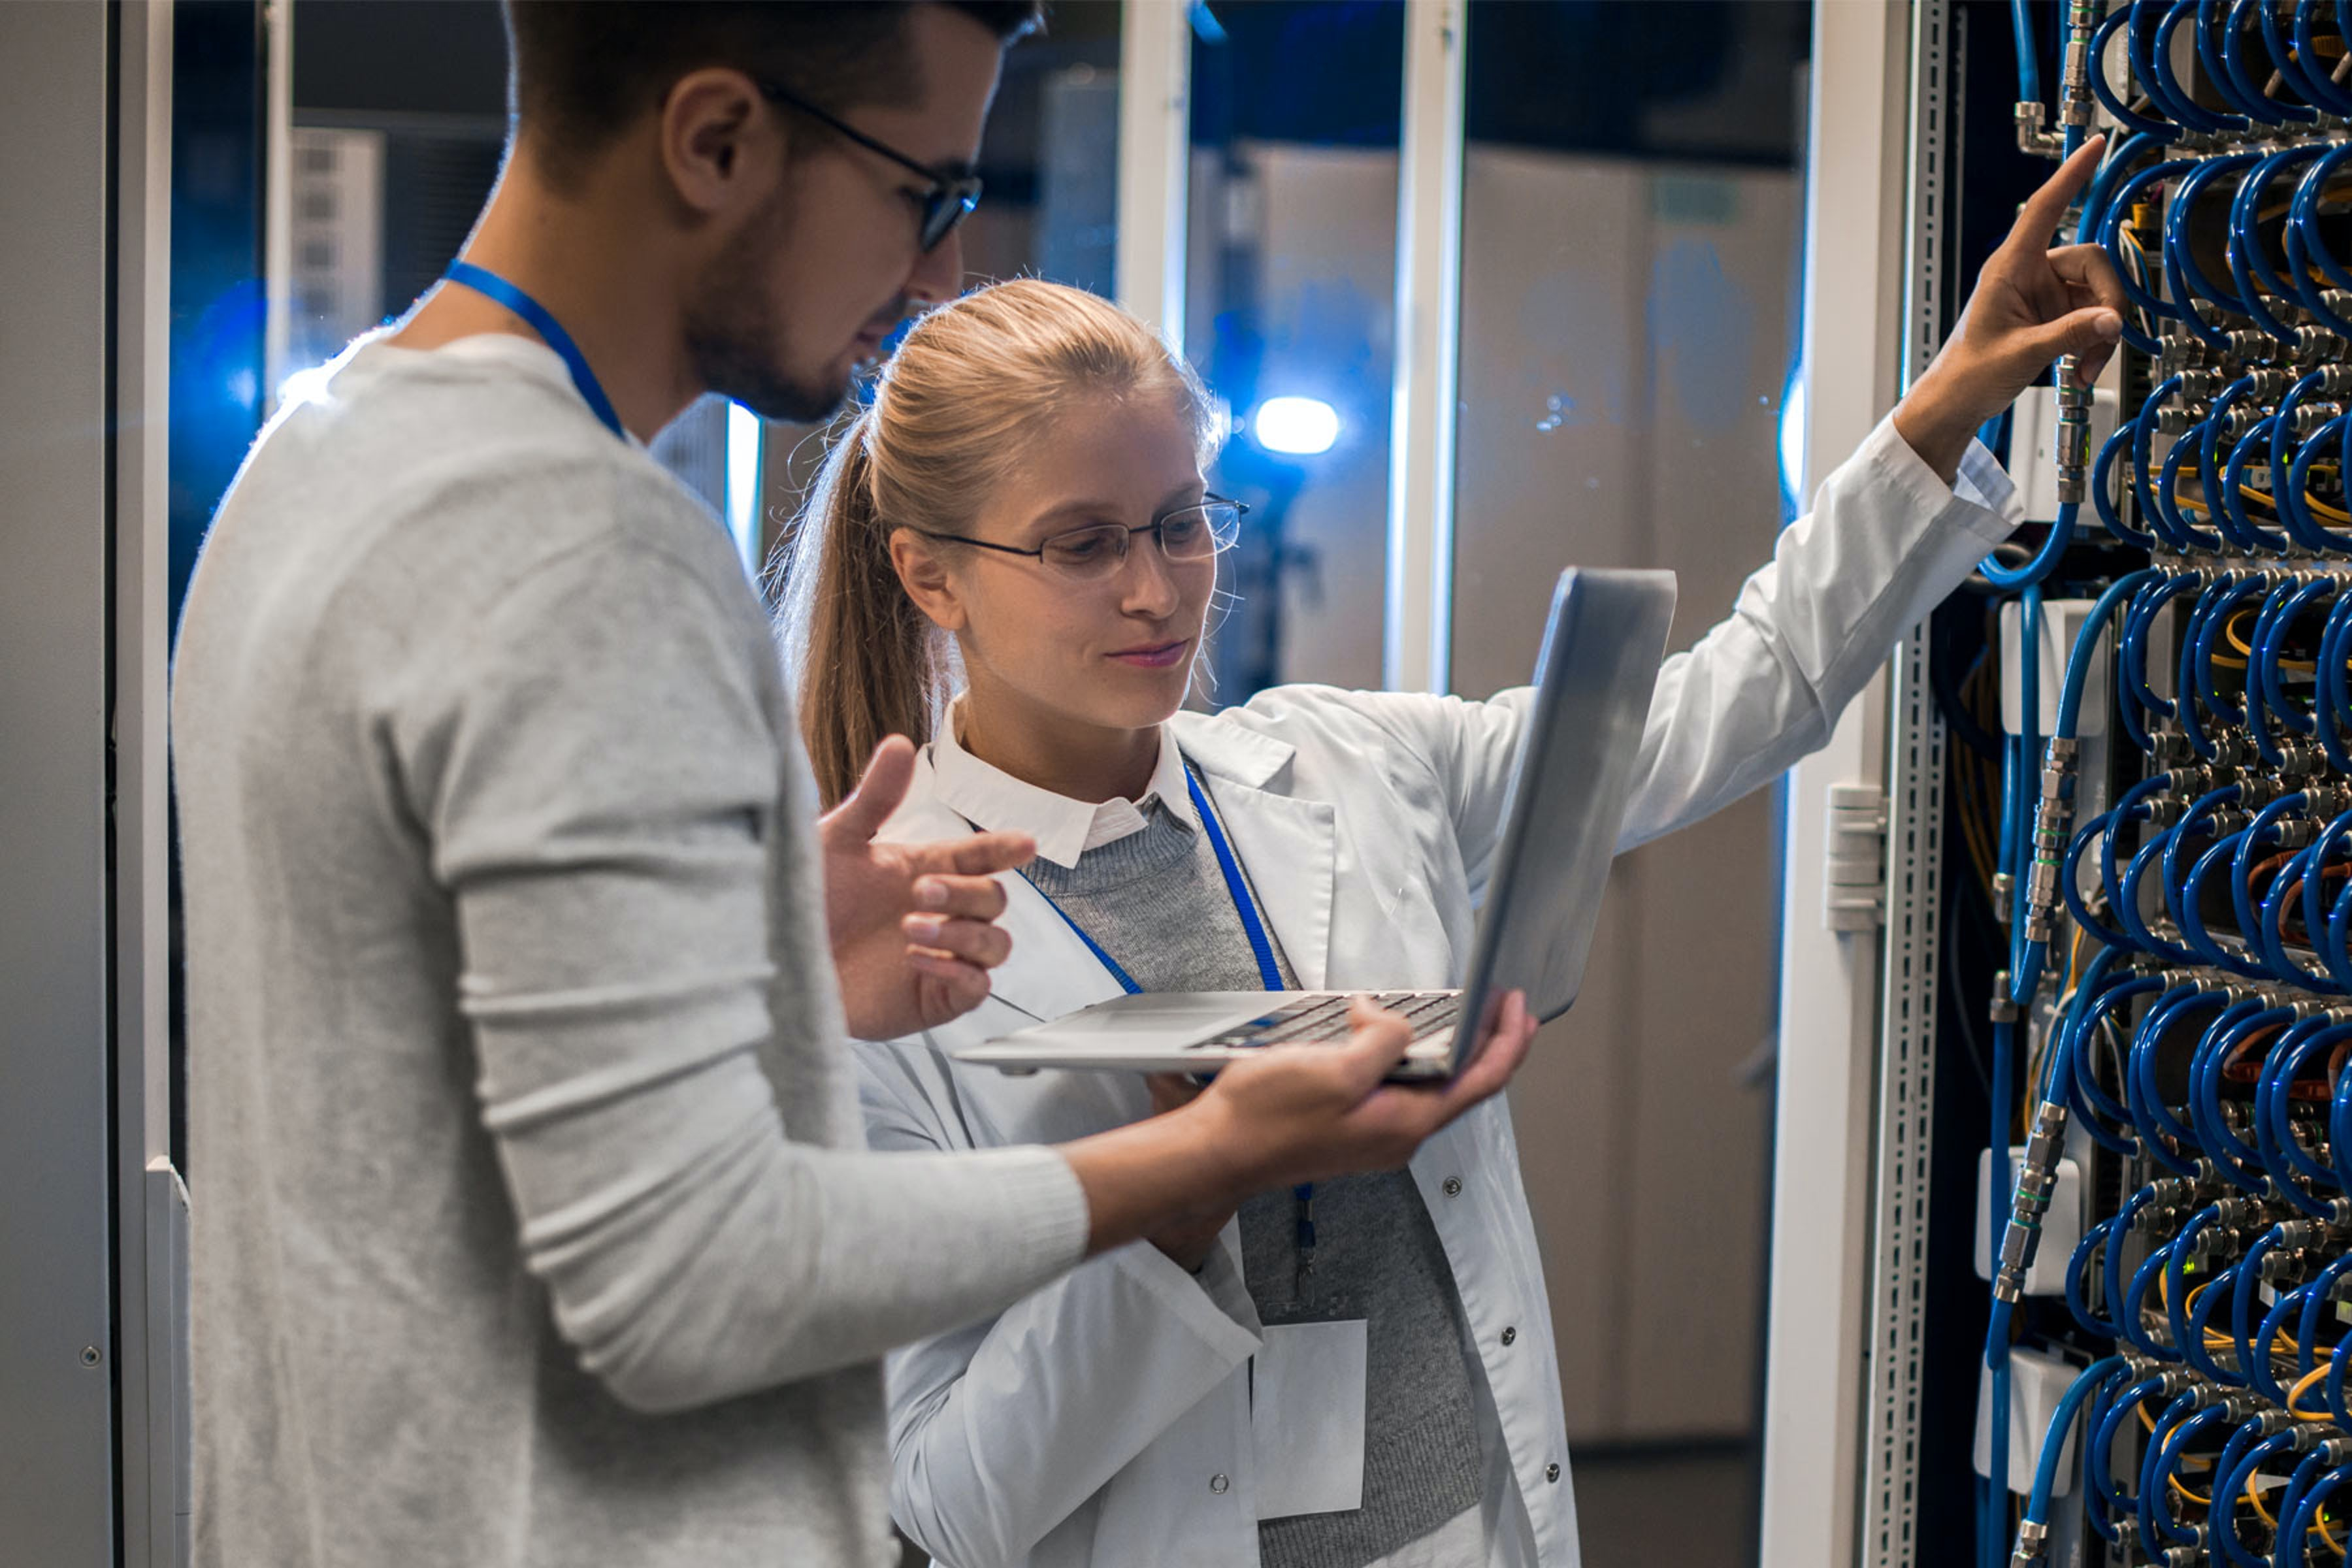 two employees look at a laptop and inspect servers